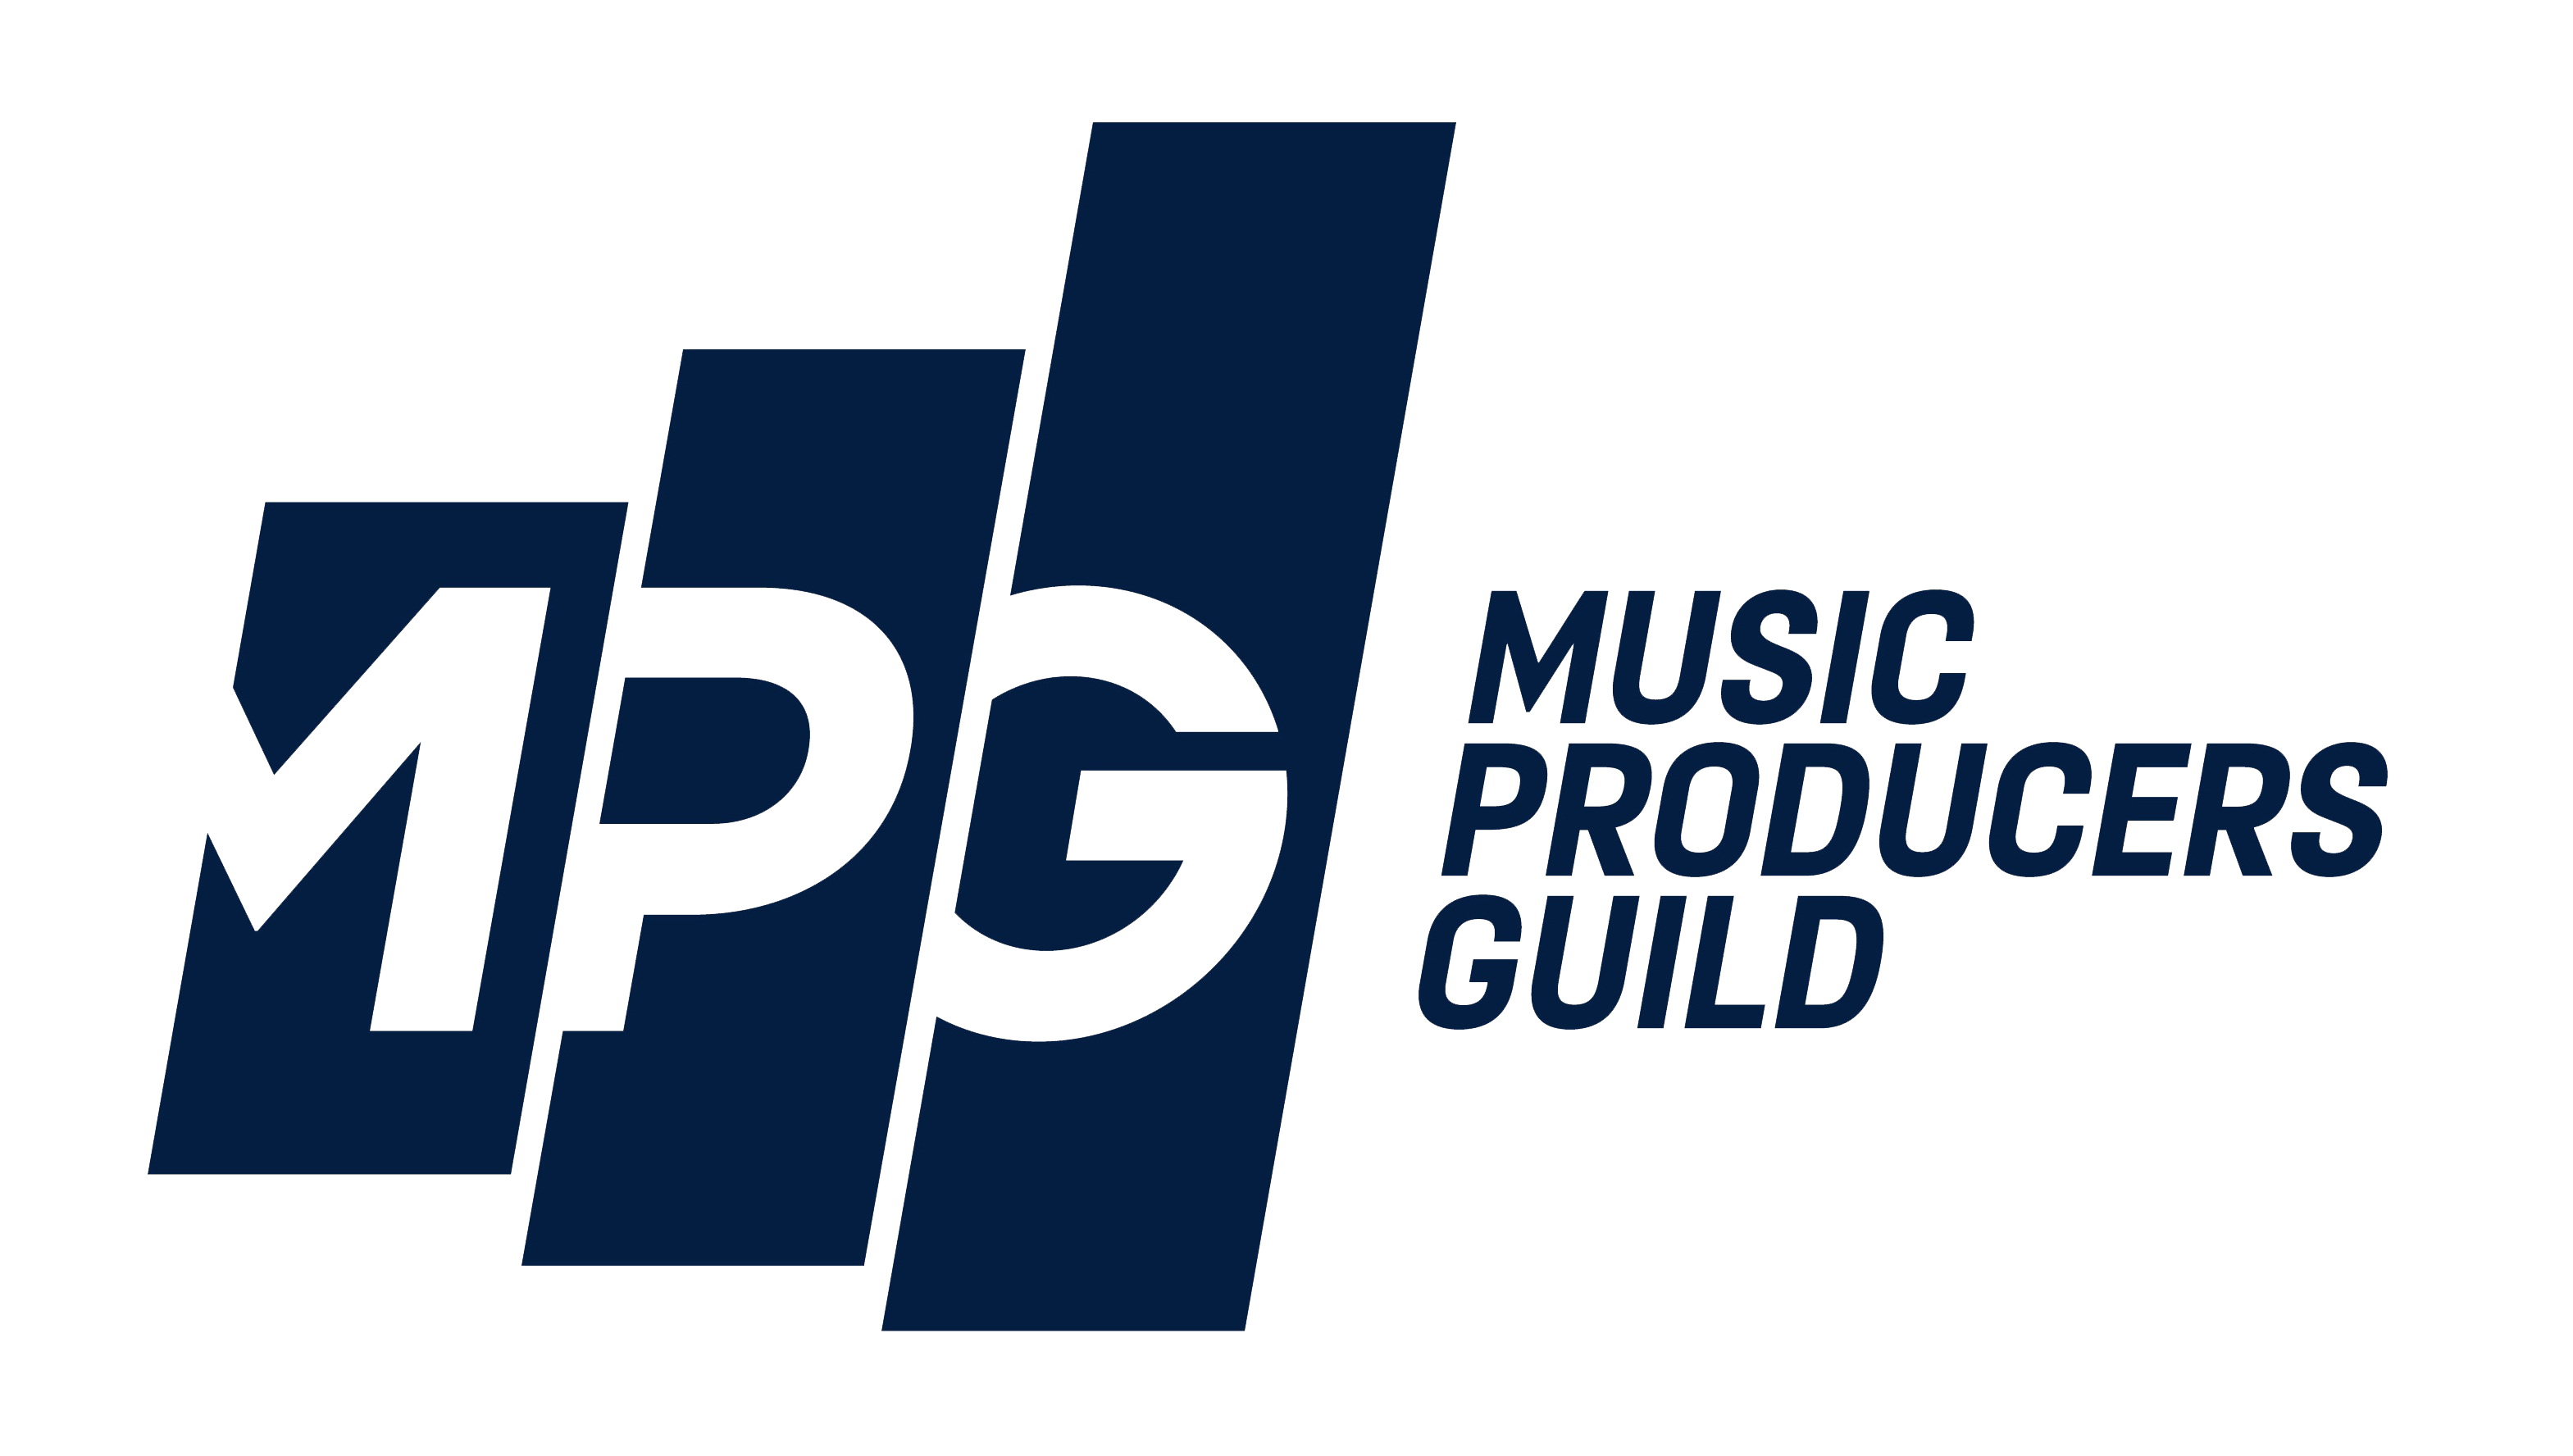 music producers guild - wikipedia